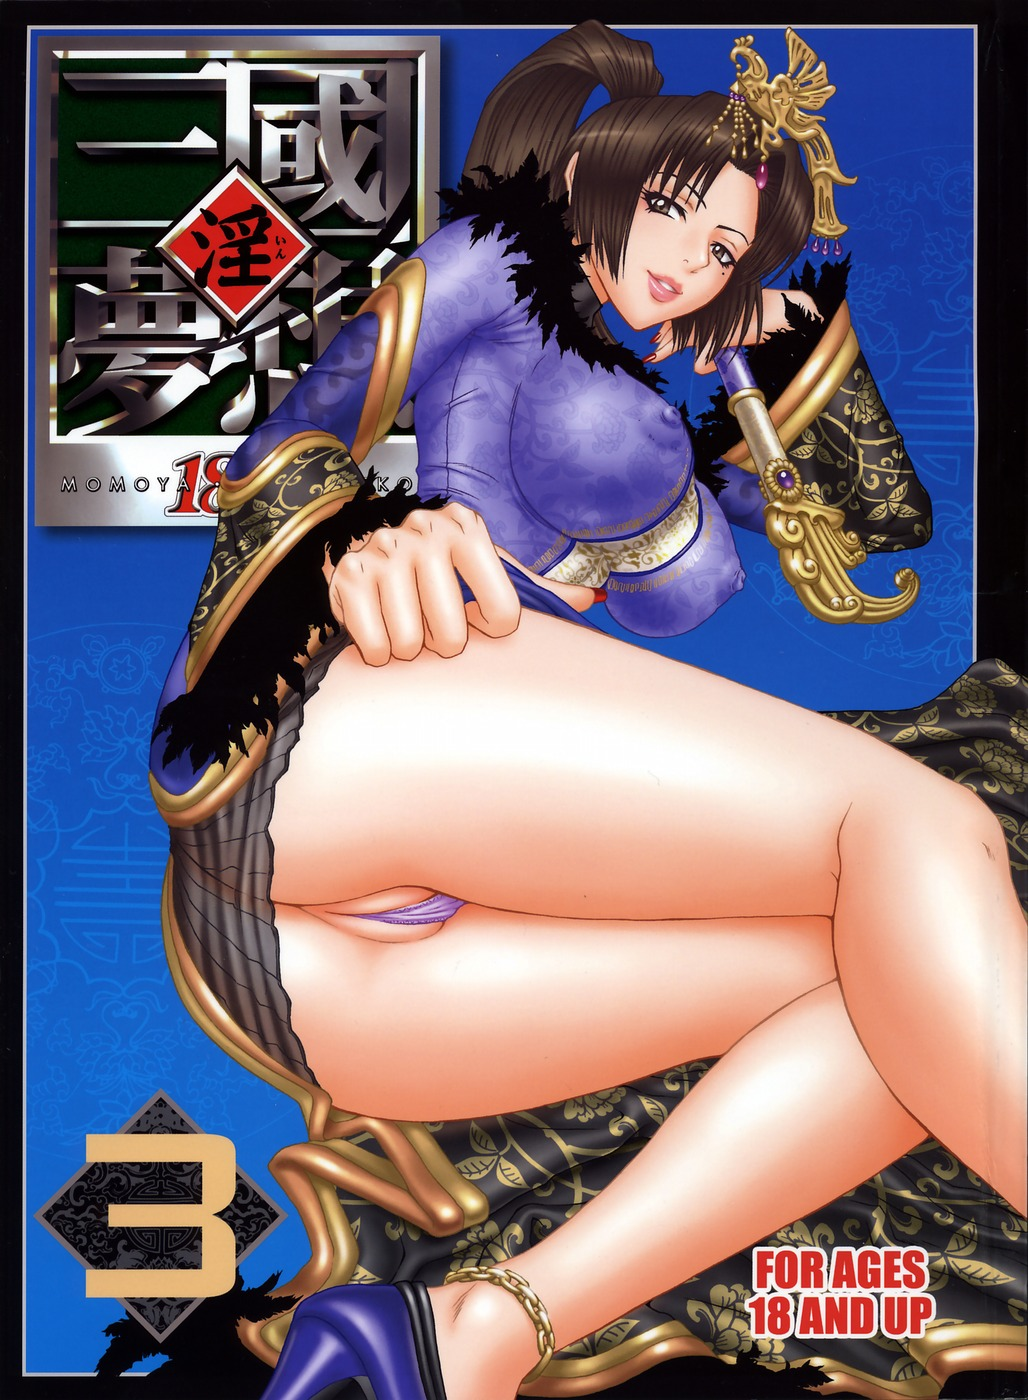 Dynasty warriors mobi porn nackt pictures